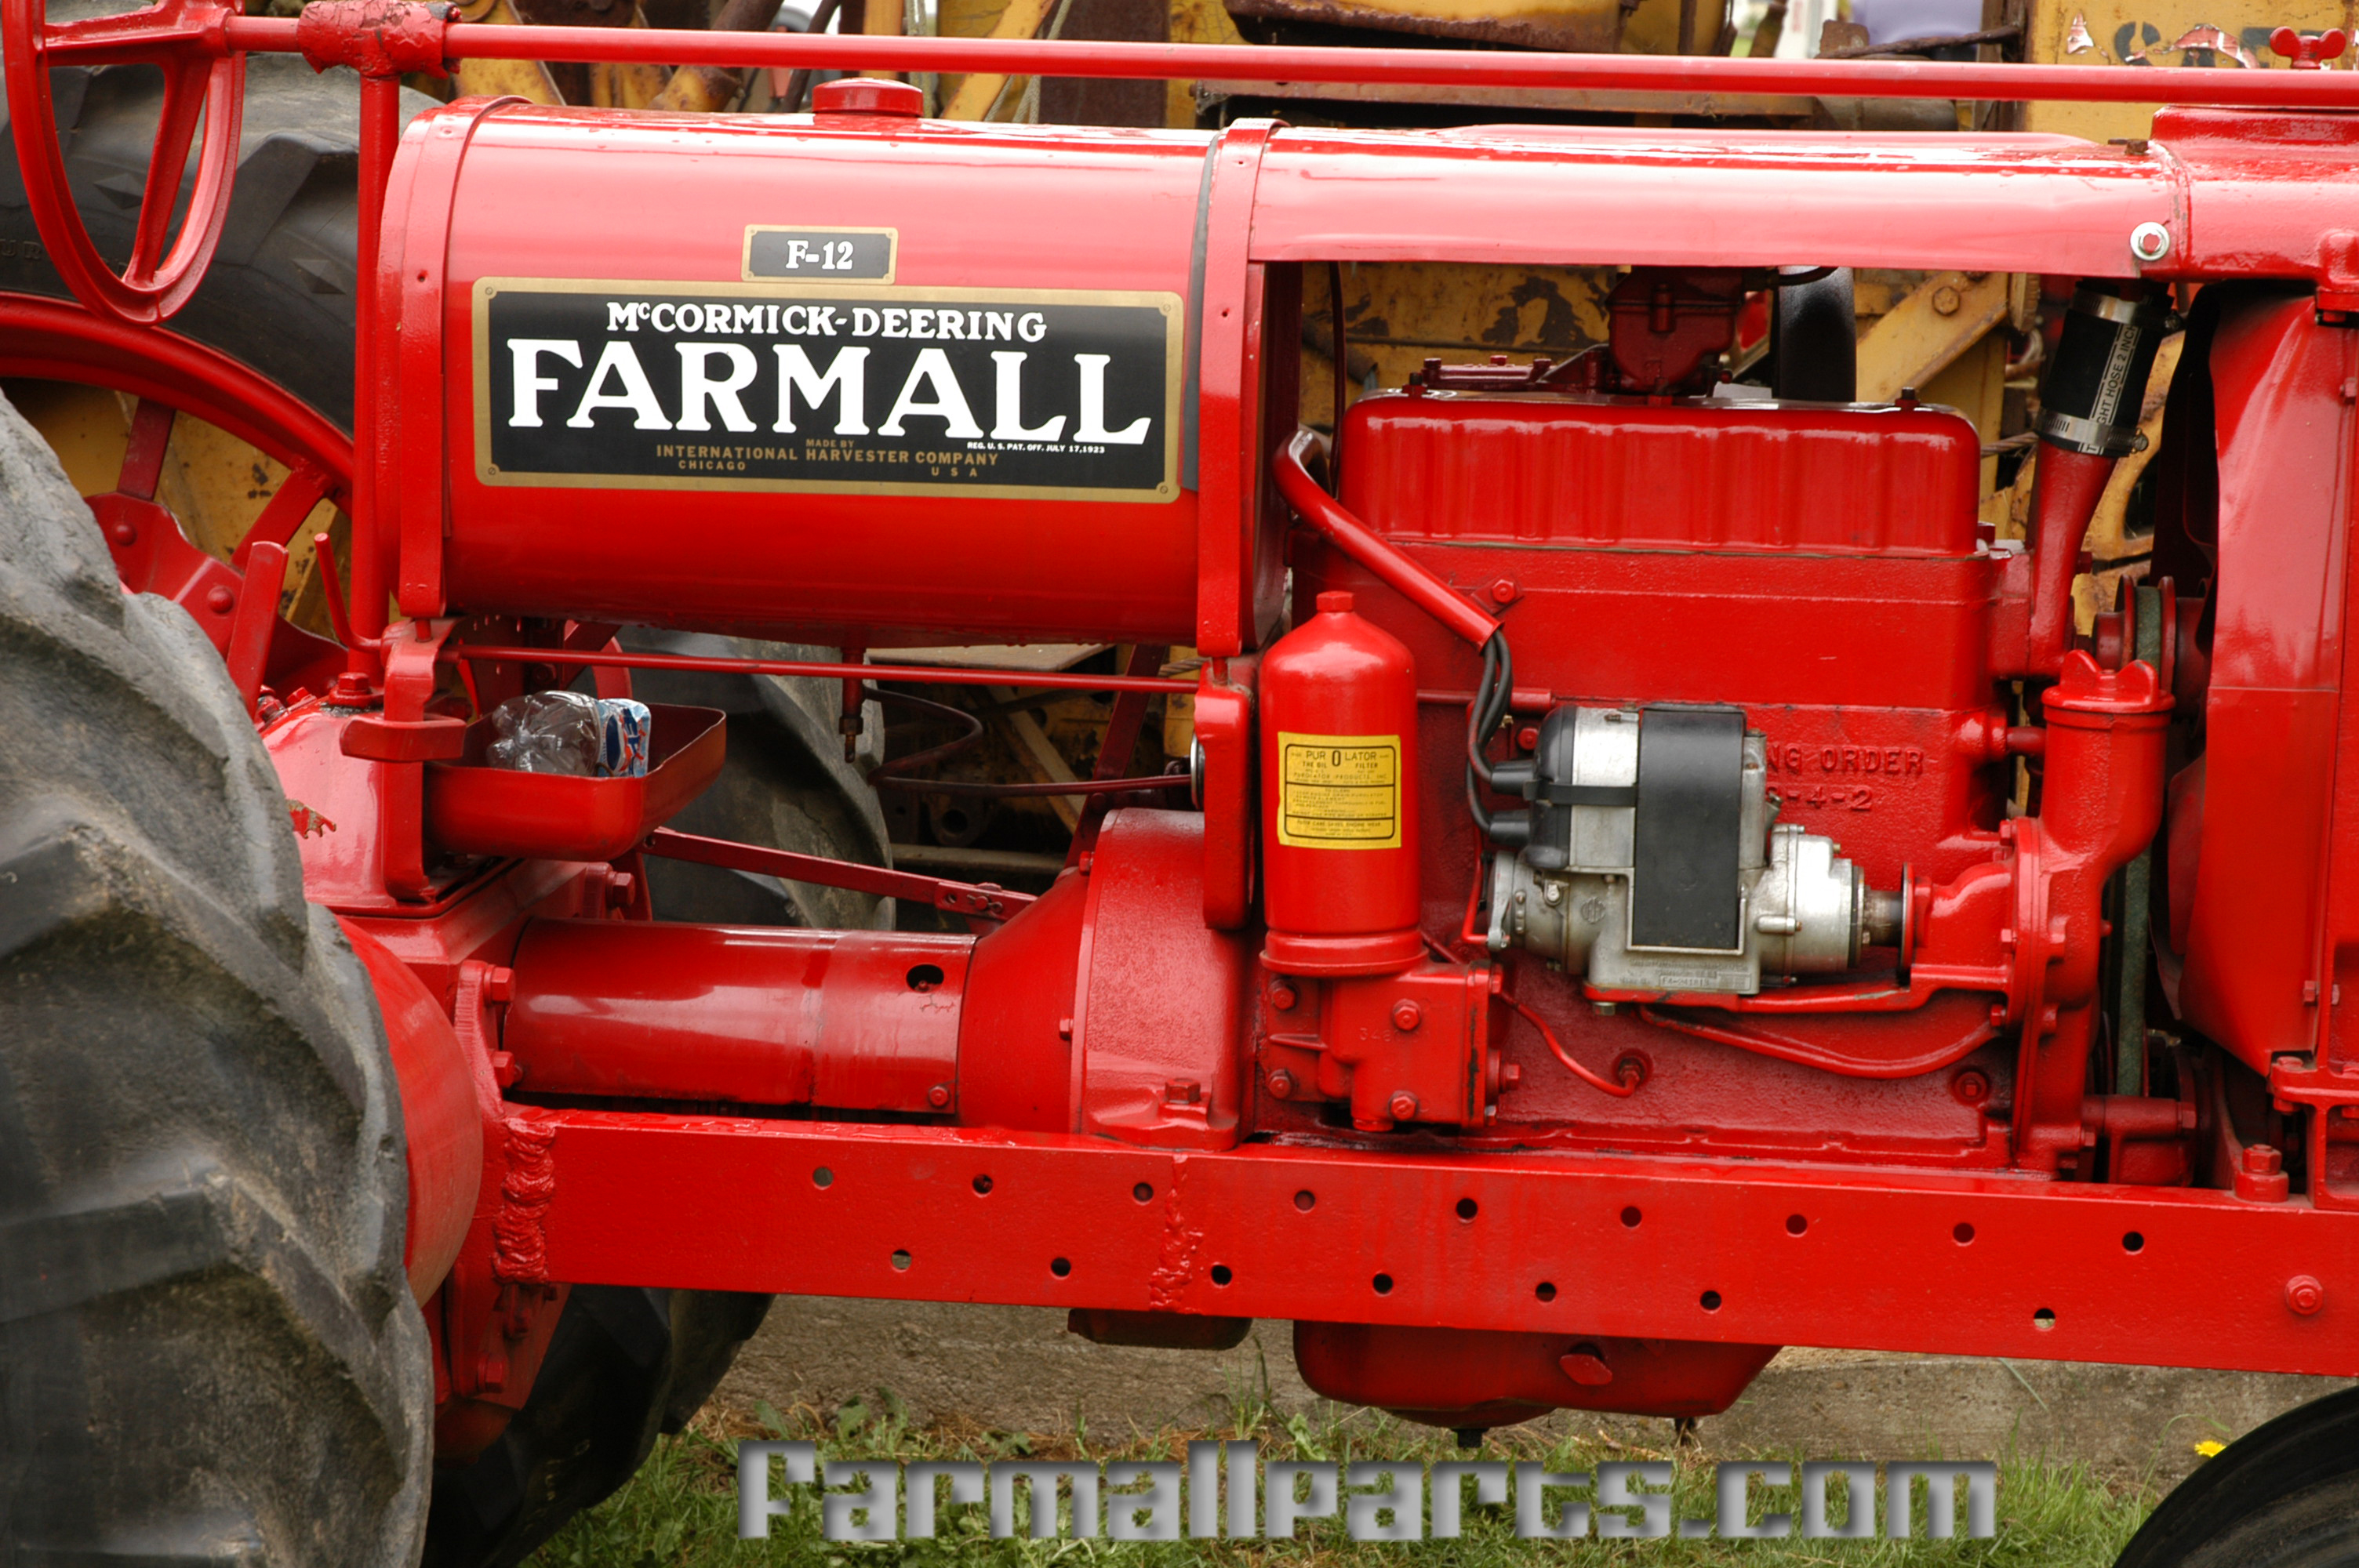 mccormick tractor with Gallery Image Php on Ral 1015 Light Ivory Colour Code Gloss Enamel Metal Paint 554 P further Sub image further Gallery image php also International Industrial Tractor B450 Brochure B 450 10564 P further Buehrer.